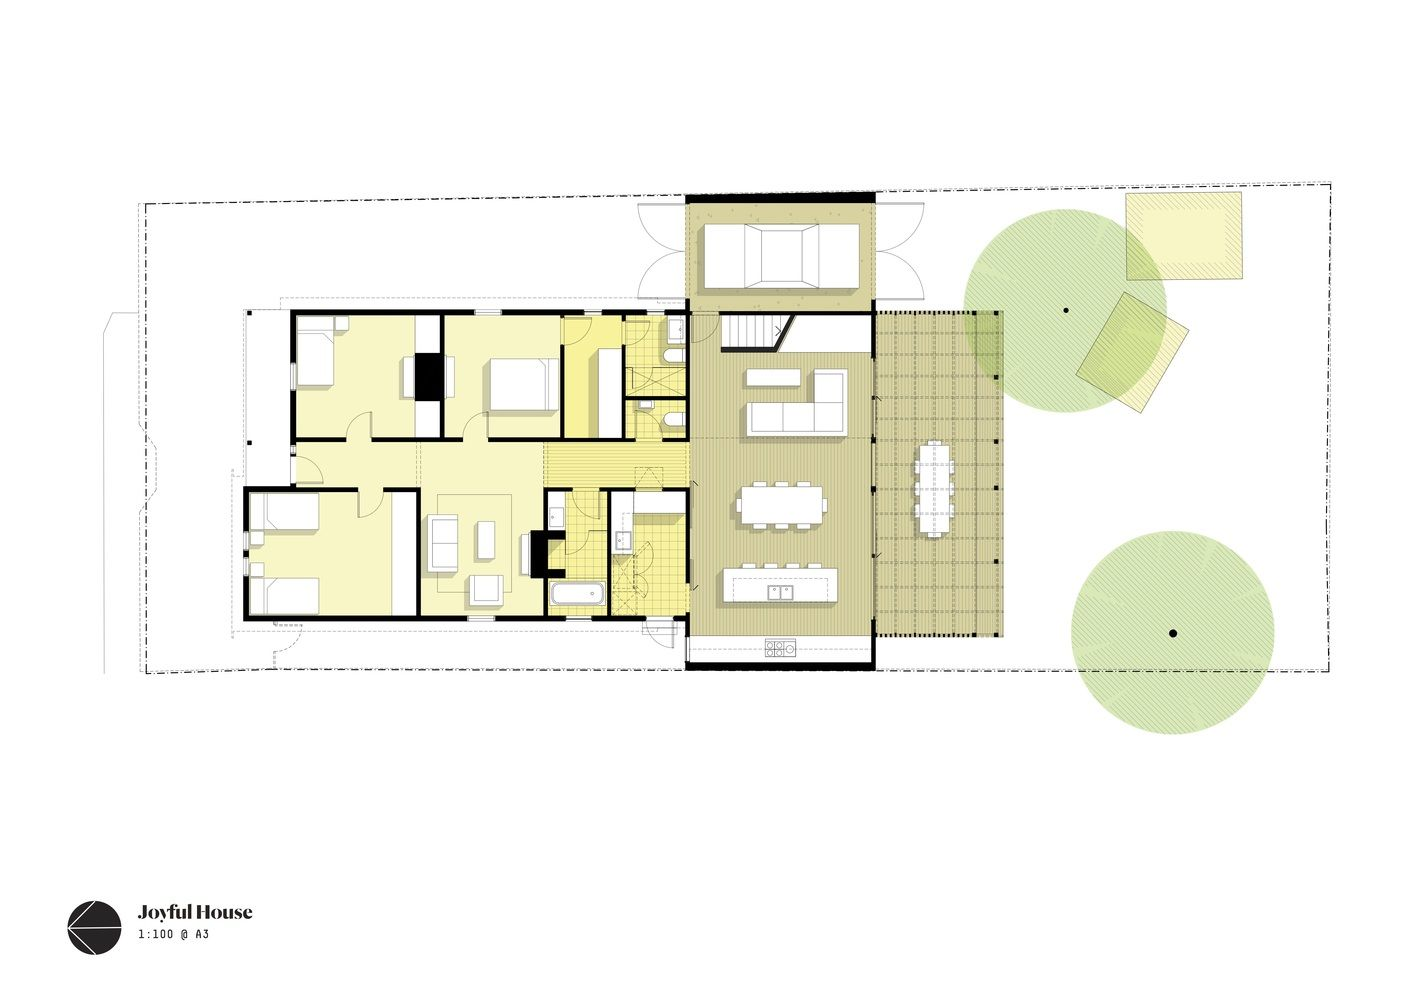 This Joyful House Brings In Light And Opens Onto The Garden Floor Plans Ground Floor Plan How To Plan